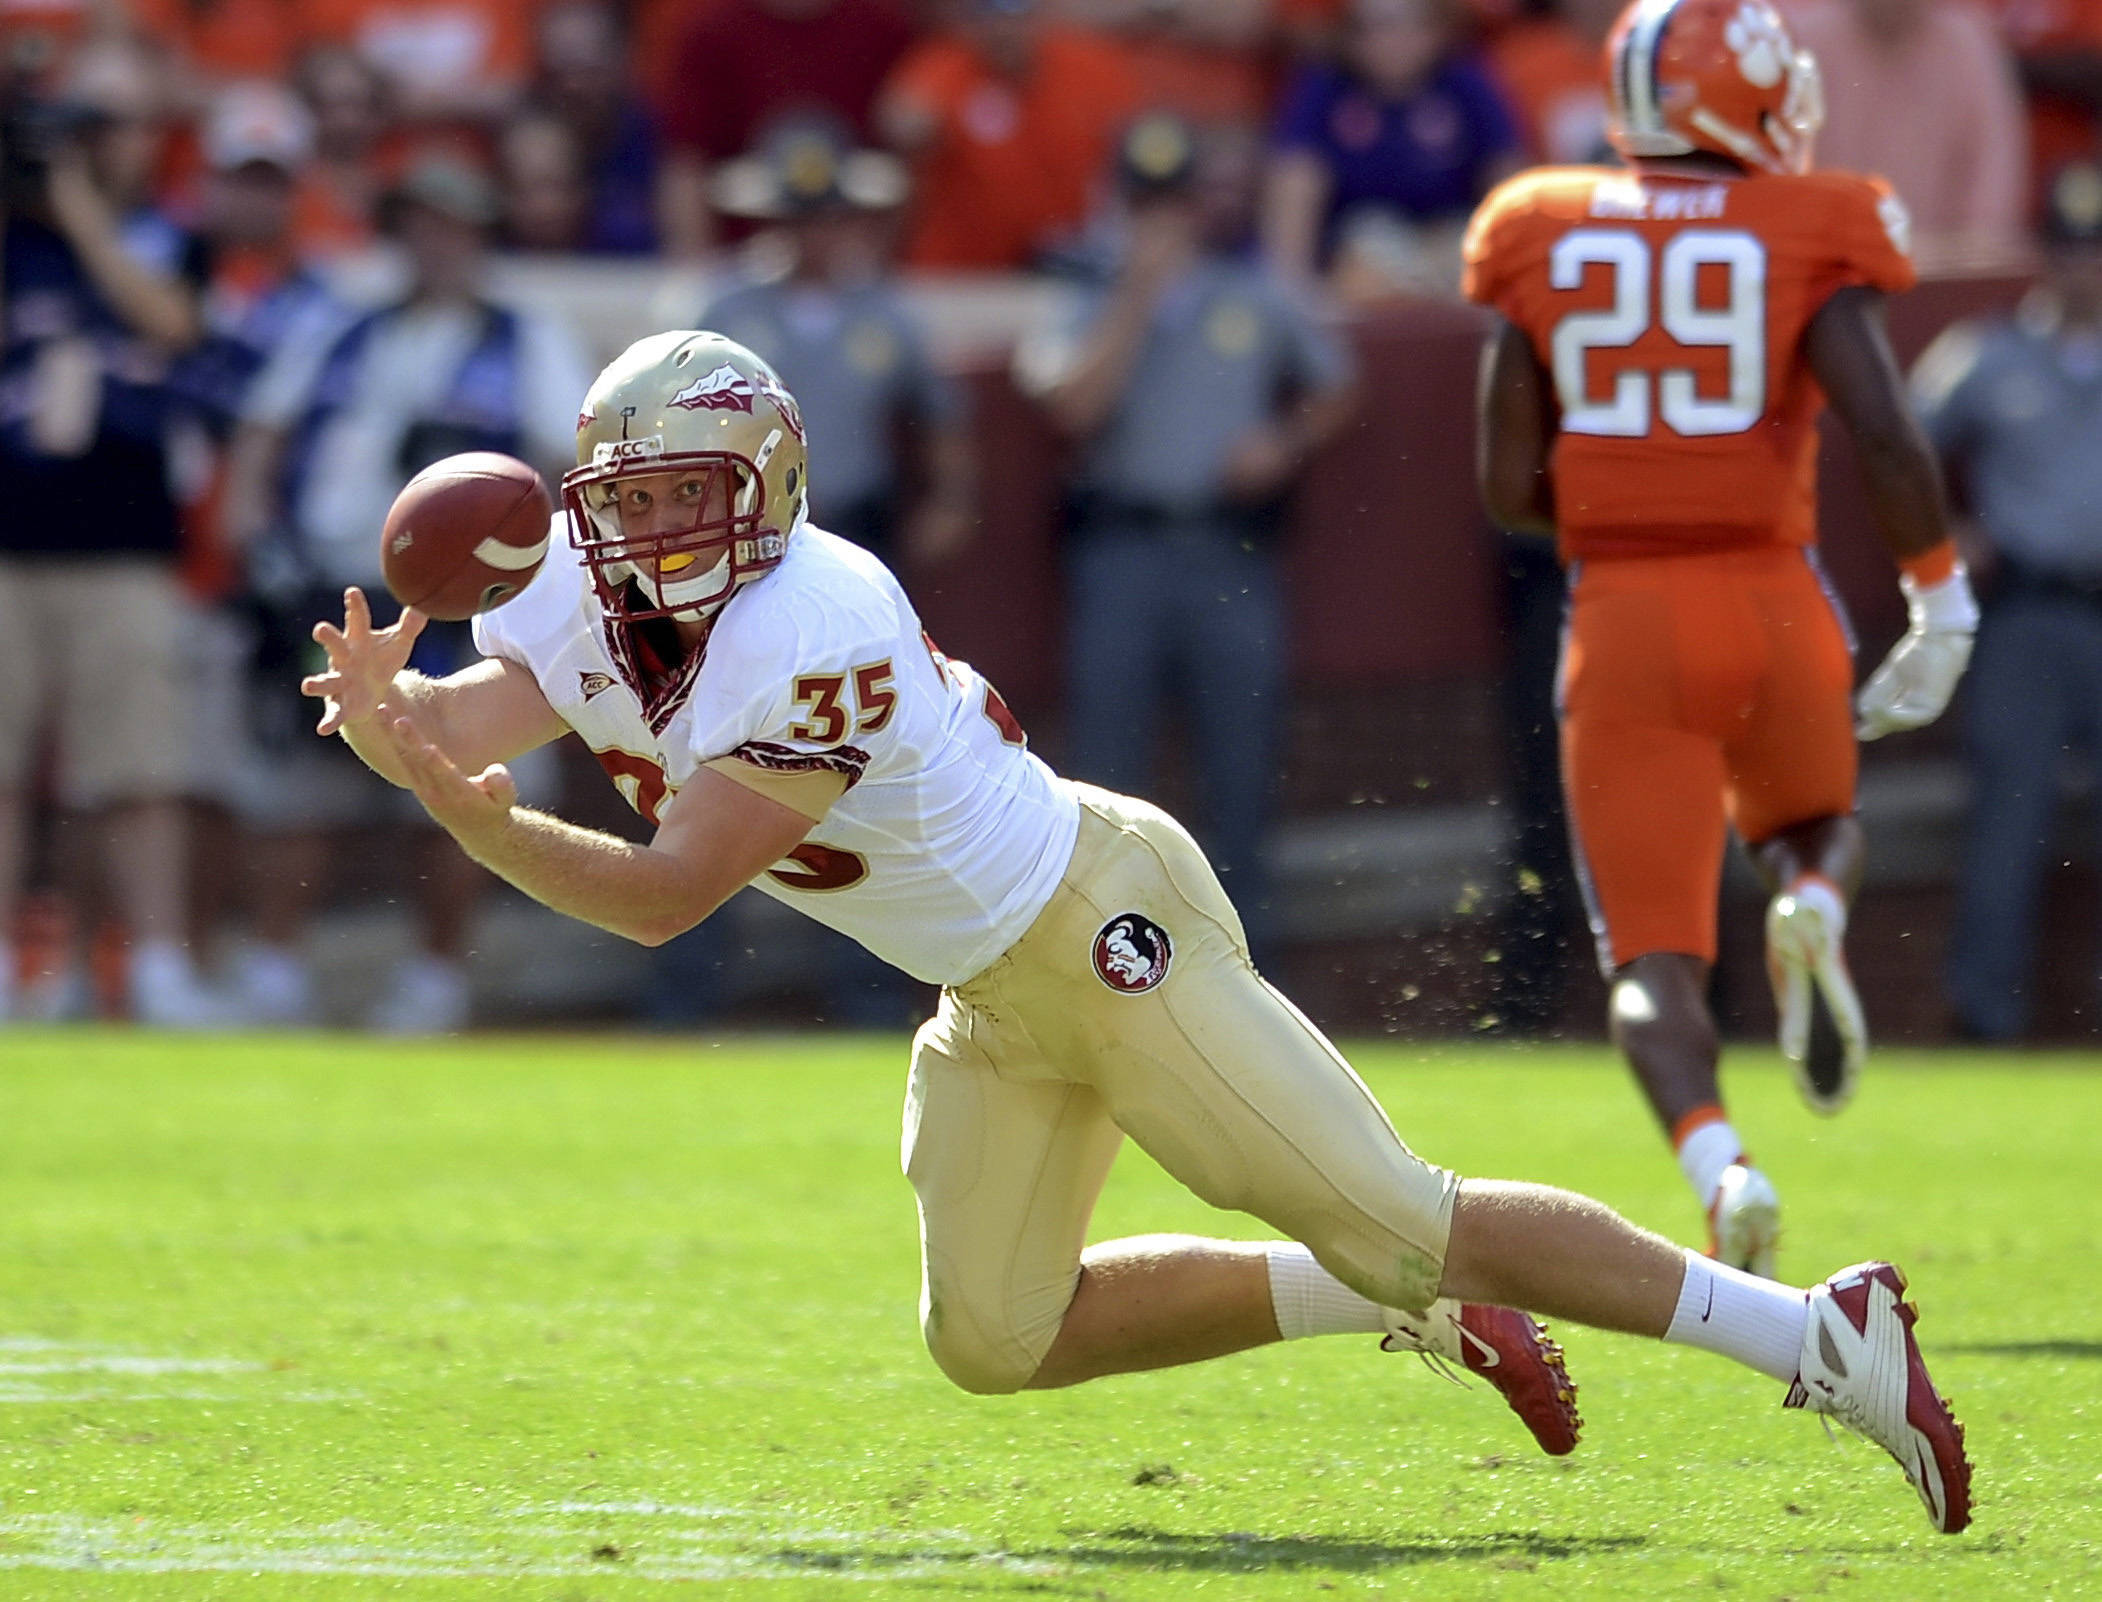 Florida State tight end Nick O'Leary (35) stretches out for a reception in the first quarter of an NCAA college football game against Clemson, Saturday Sept. 24, 2011 at Memorial Stadium in Clemson, S.C.  (AP Photo/ Richard Shiro)